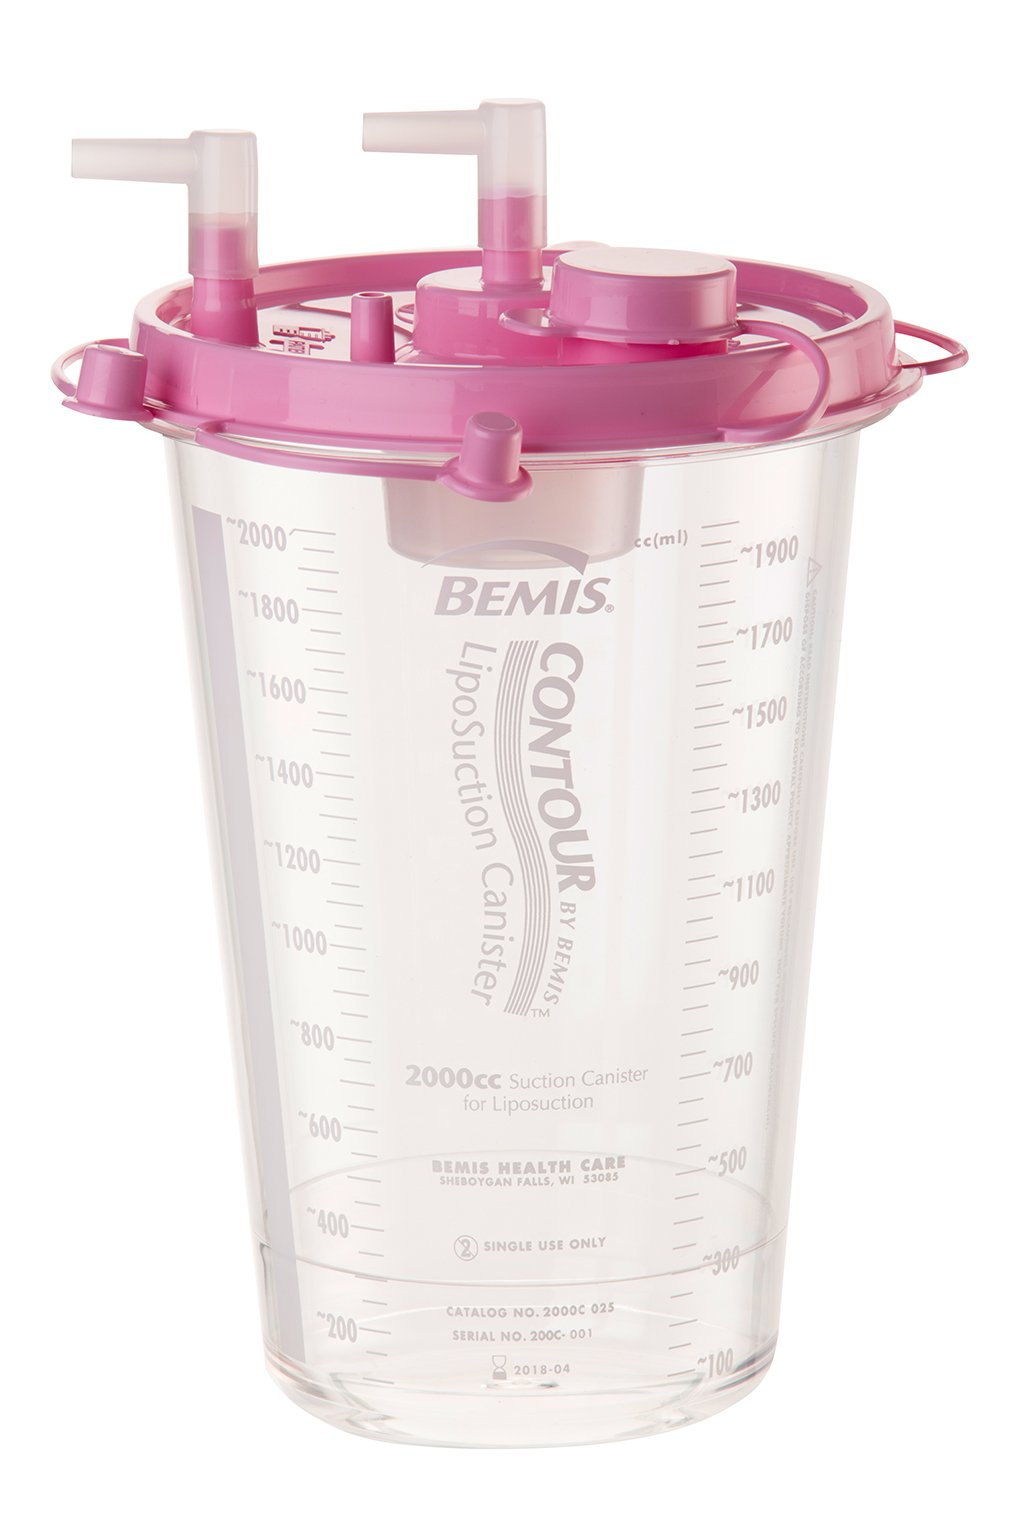 Bemis Health Care Contour Liposuction Canister, 2000cc, Pink Lid, Pack of 12, 2000C 025